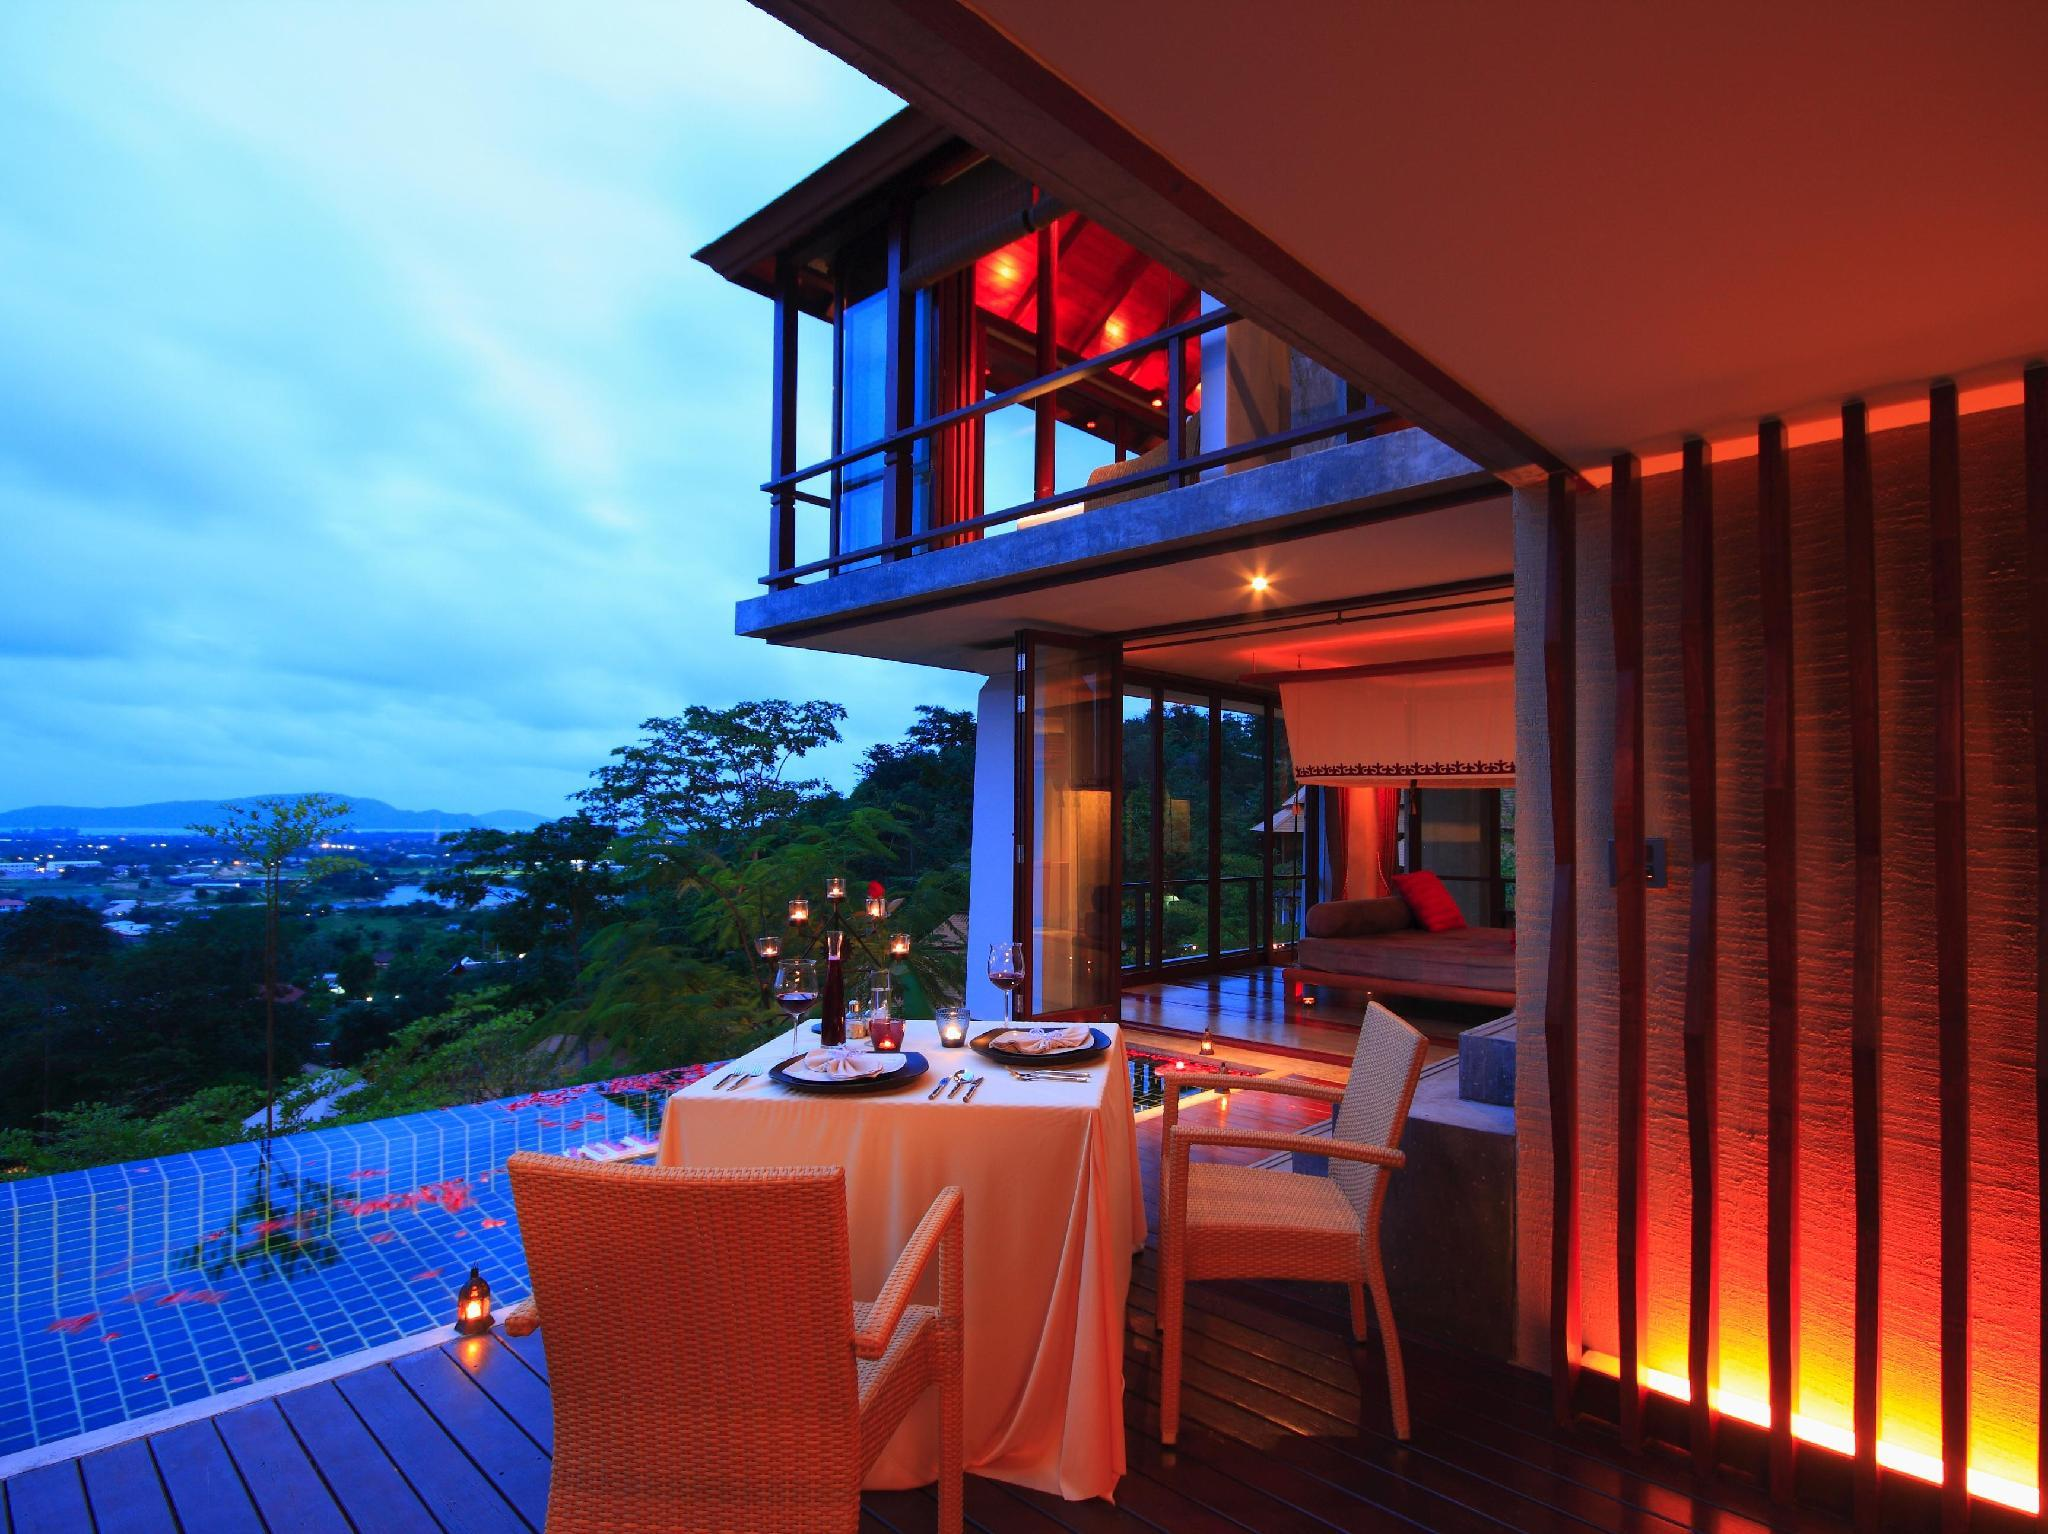 Villa Zolitude Resort & Spa, Pulau Phuket